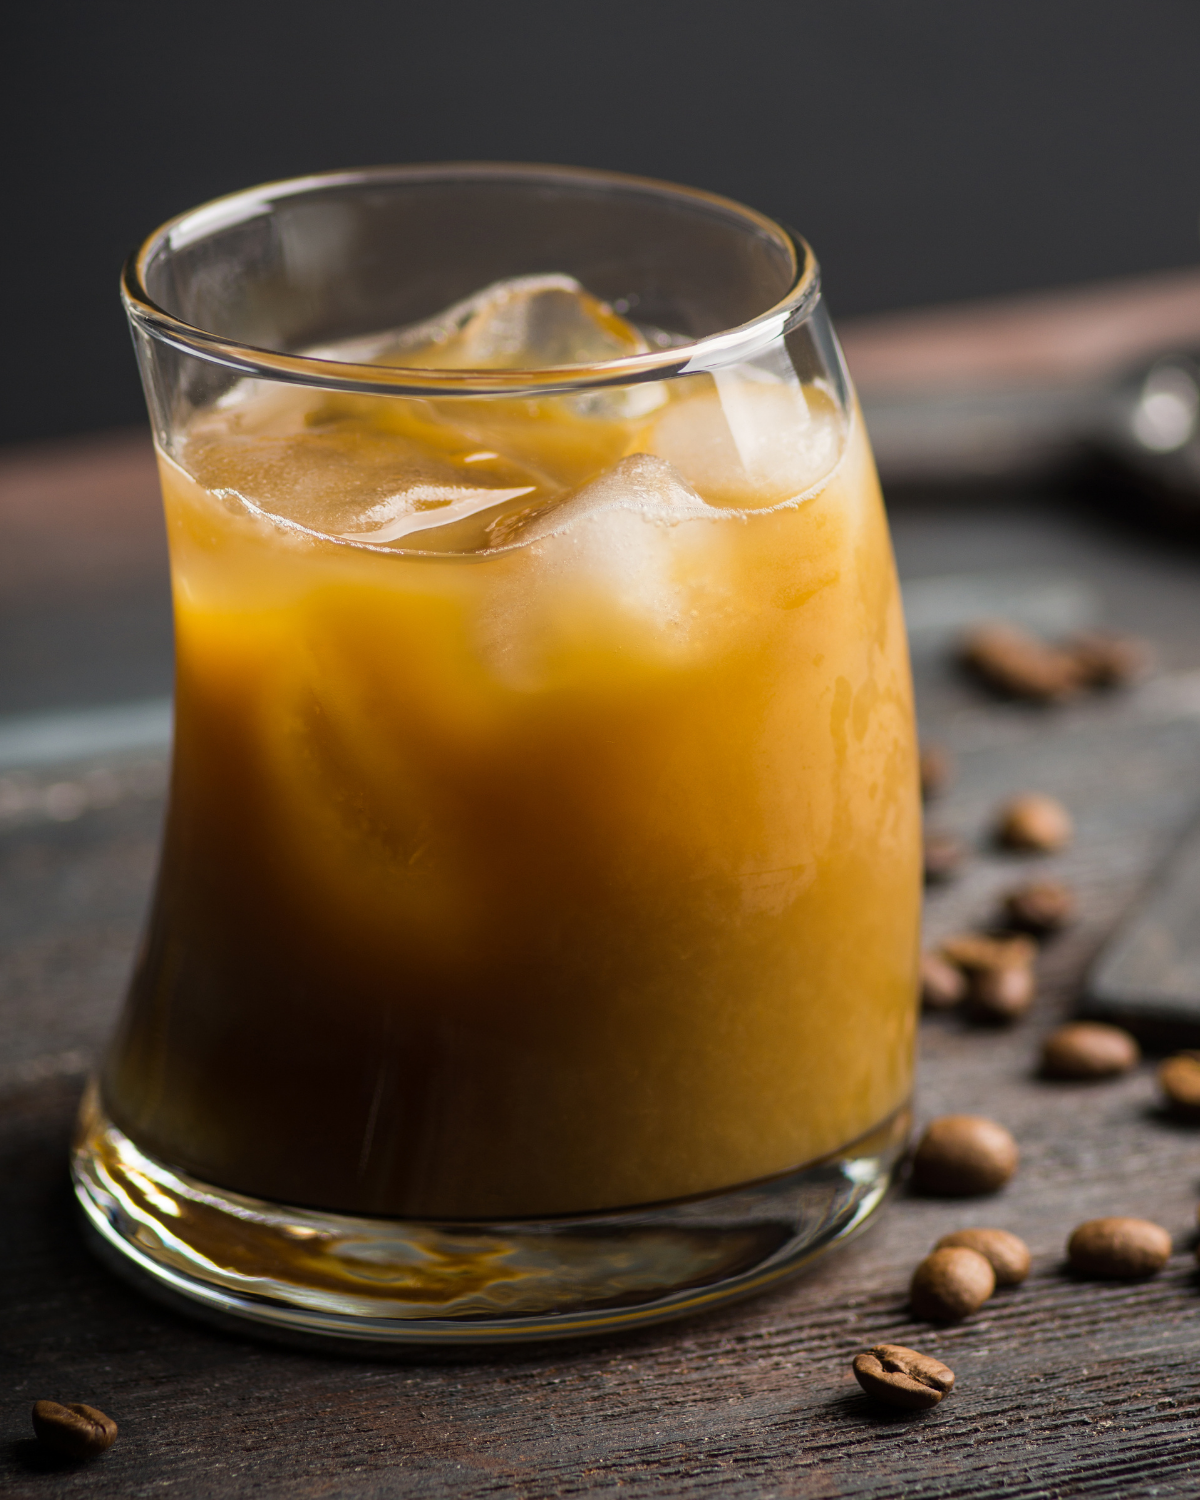 A Grownup Chocolate Milk Cocktail — Tribe's CBD Off-White Russian No. 1